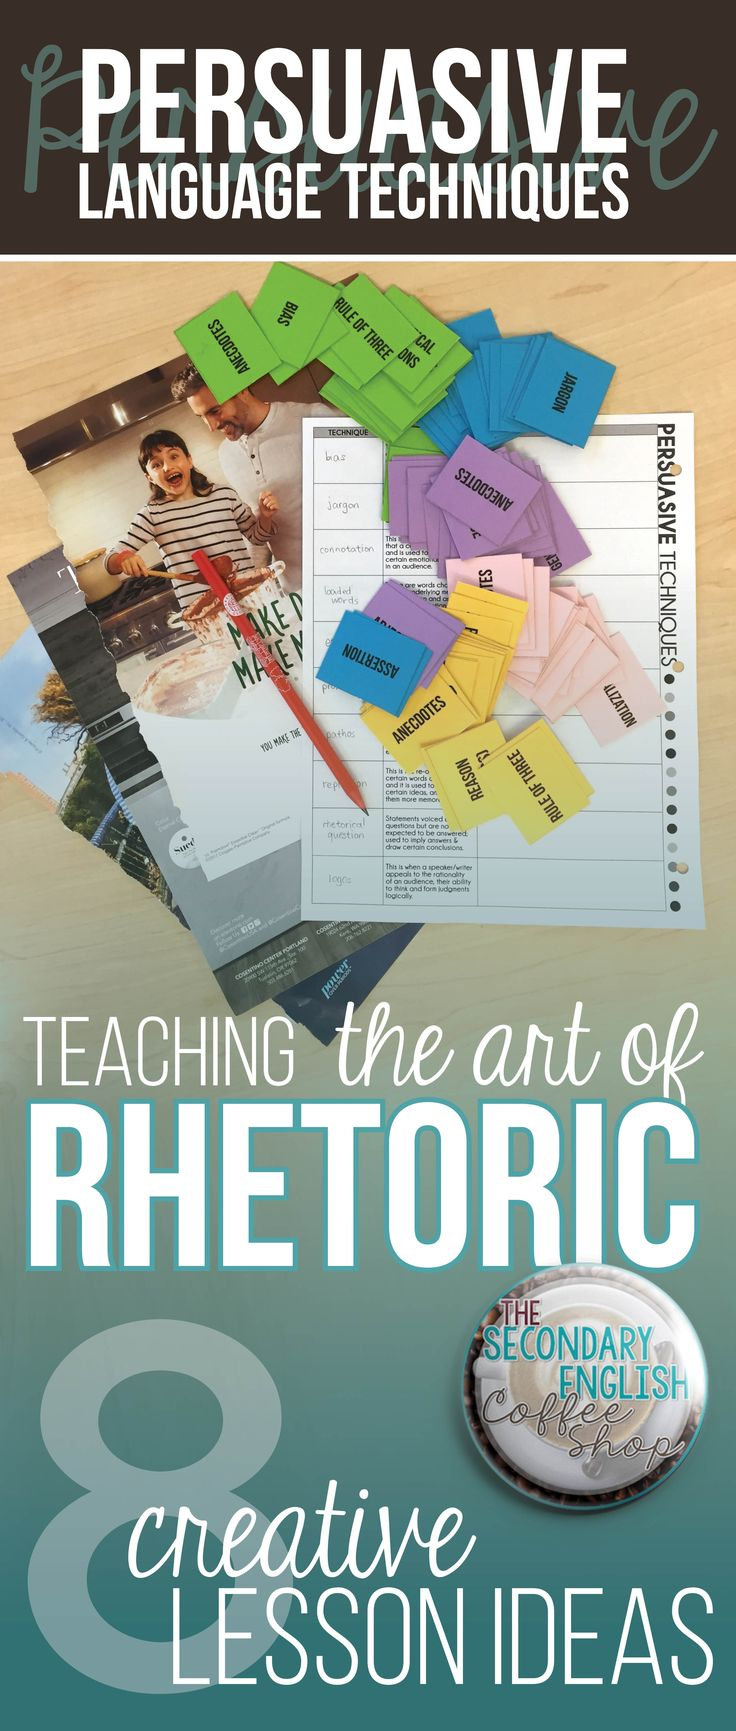 A blog post with free teaching resources and ideas for teaching rhetoric, and persuasive language techniques.